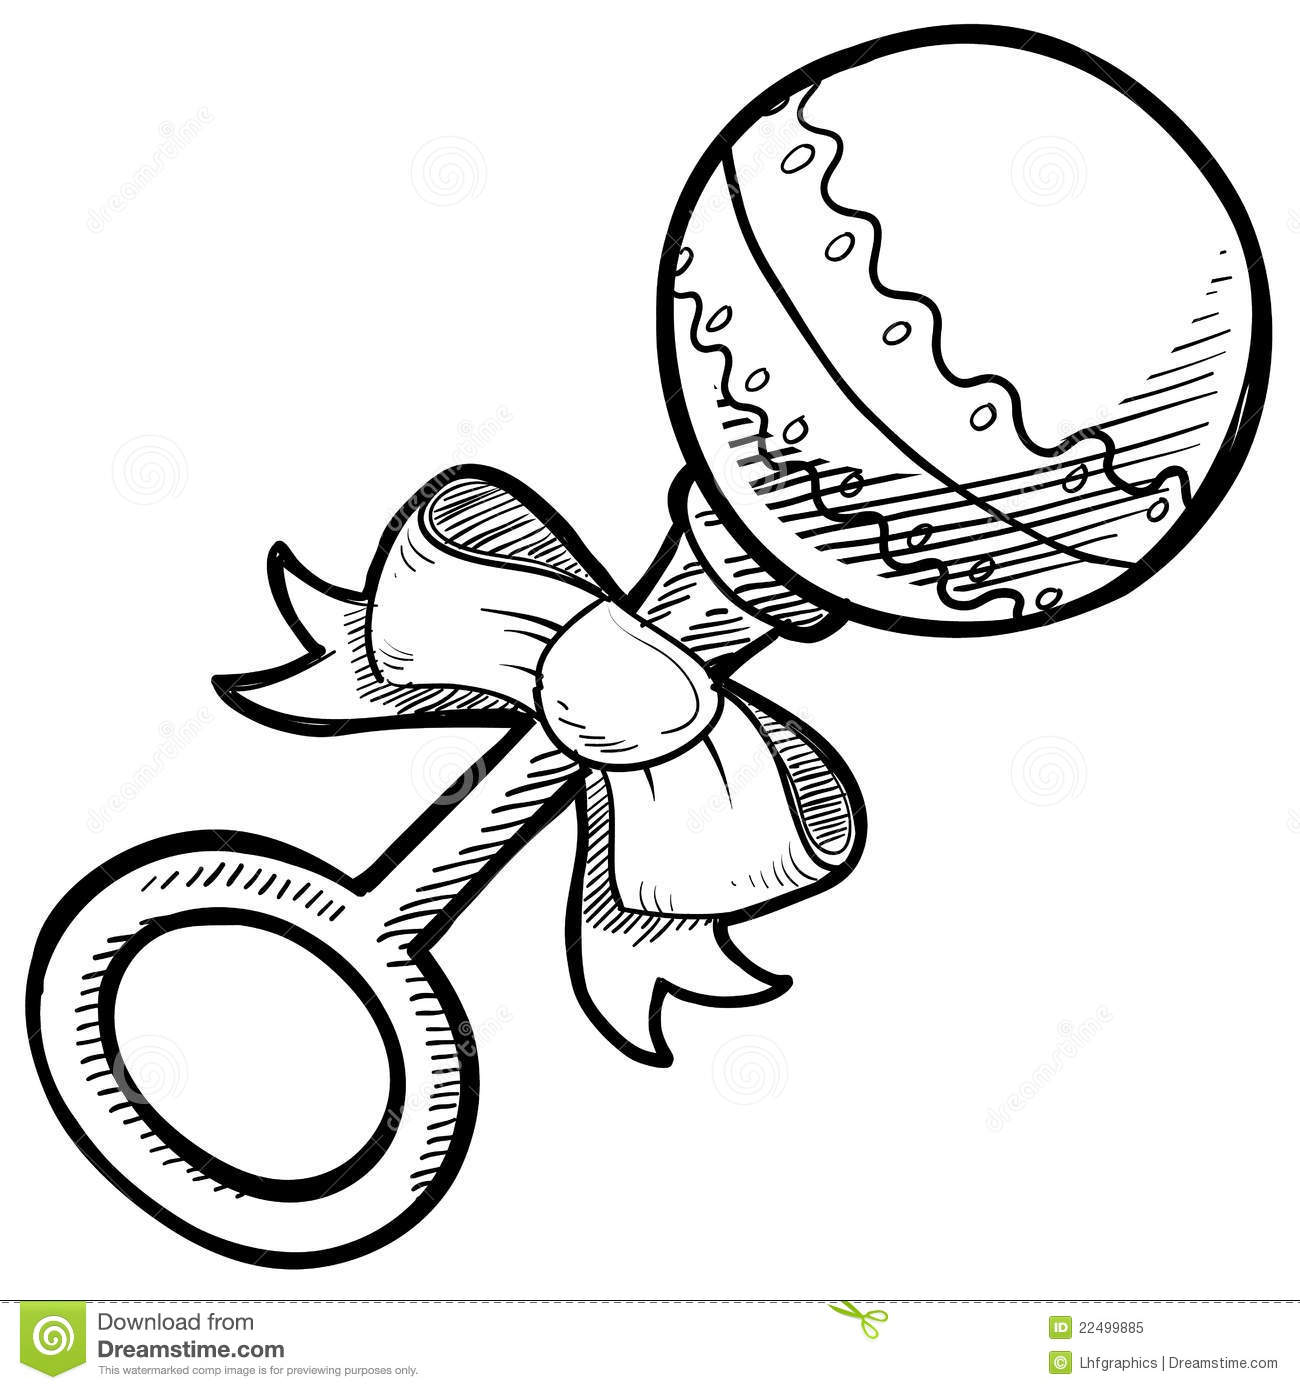 Baby Rattle Drawing Royalty Free Stock Photo